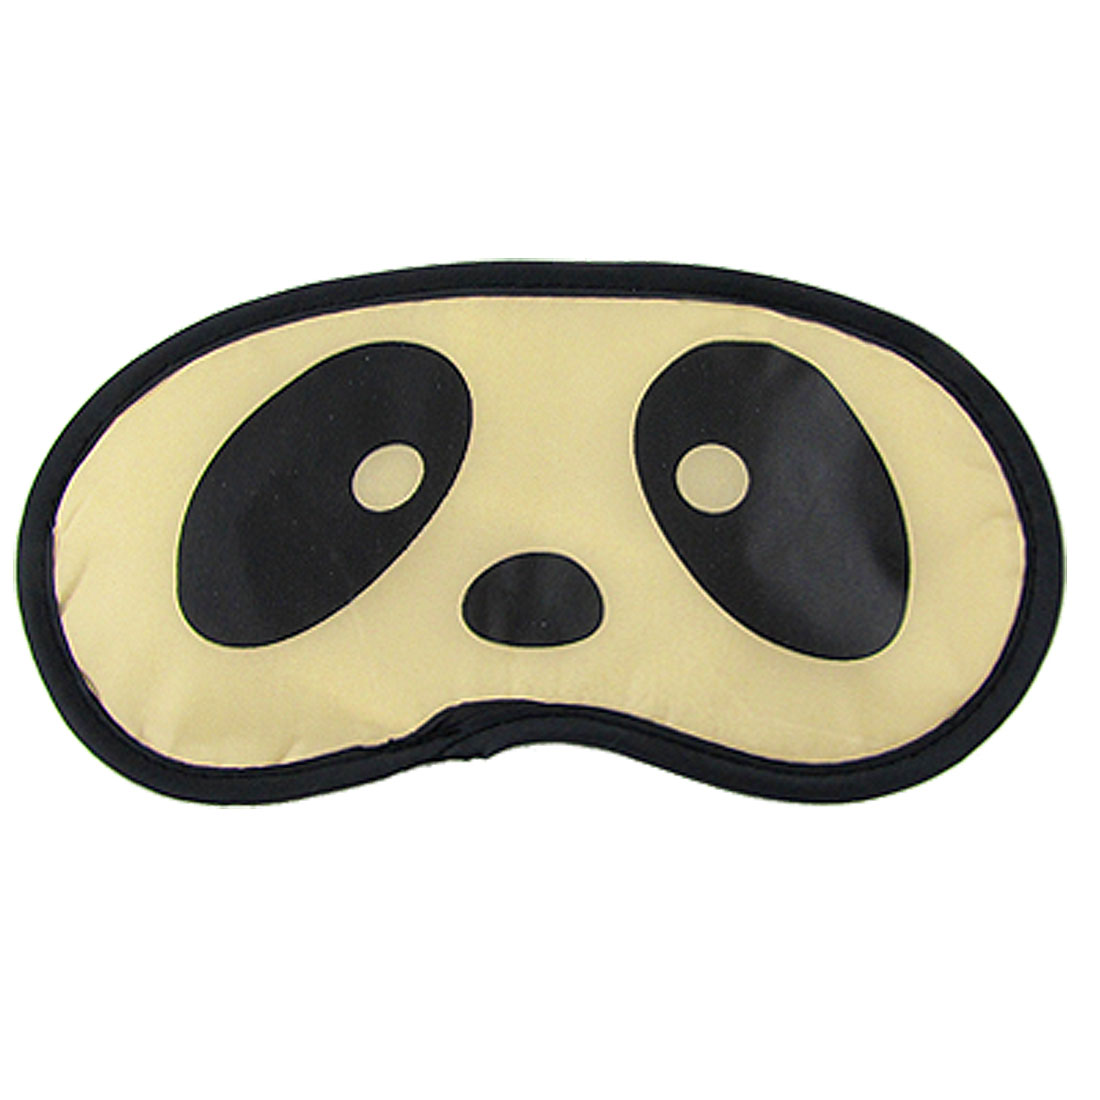 Cute Panda Face Print Soft Sleeping Cover Eye Shade Mask Patch Beige